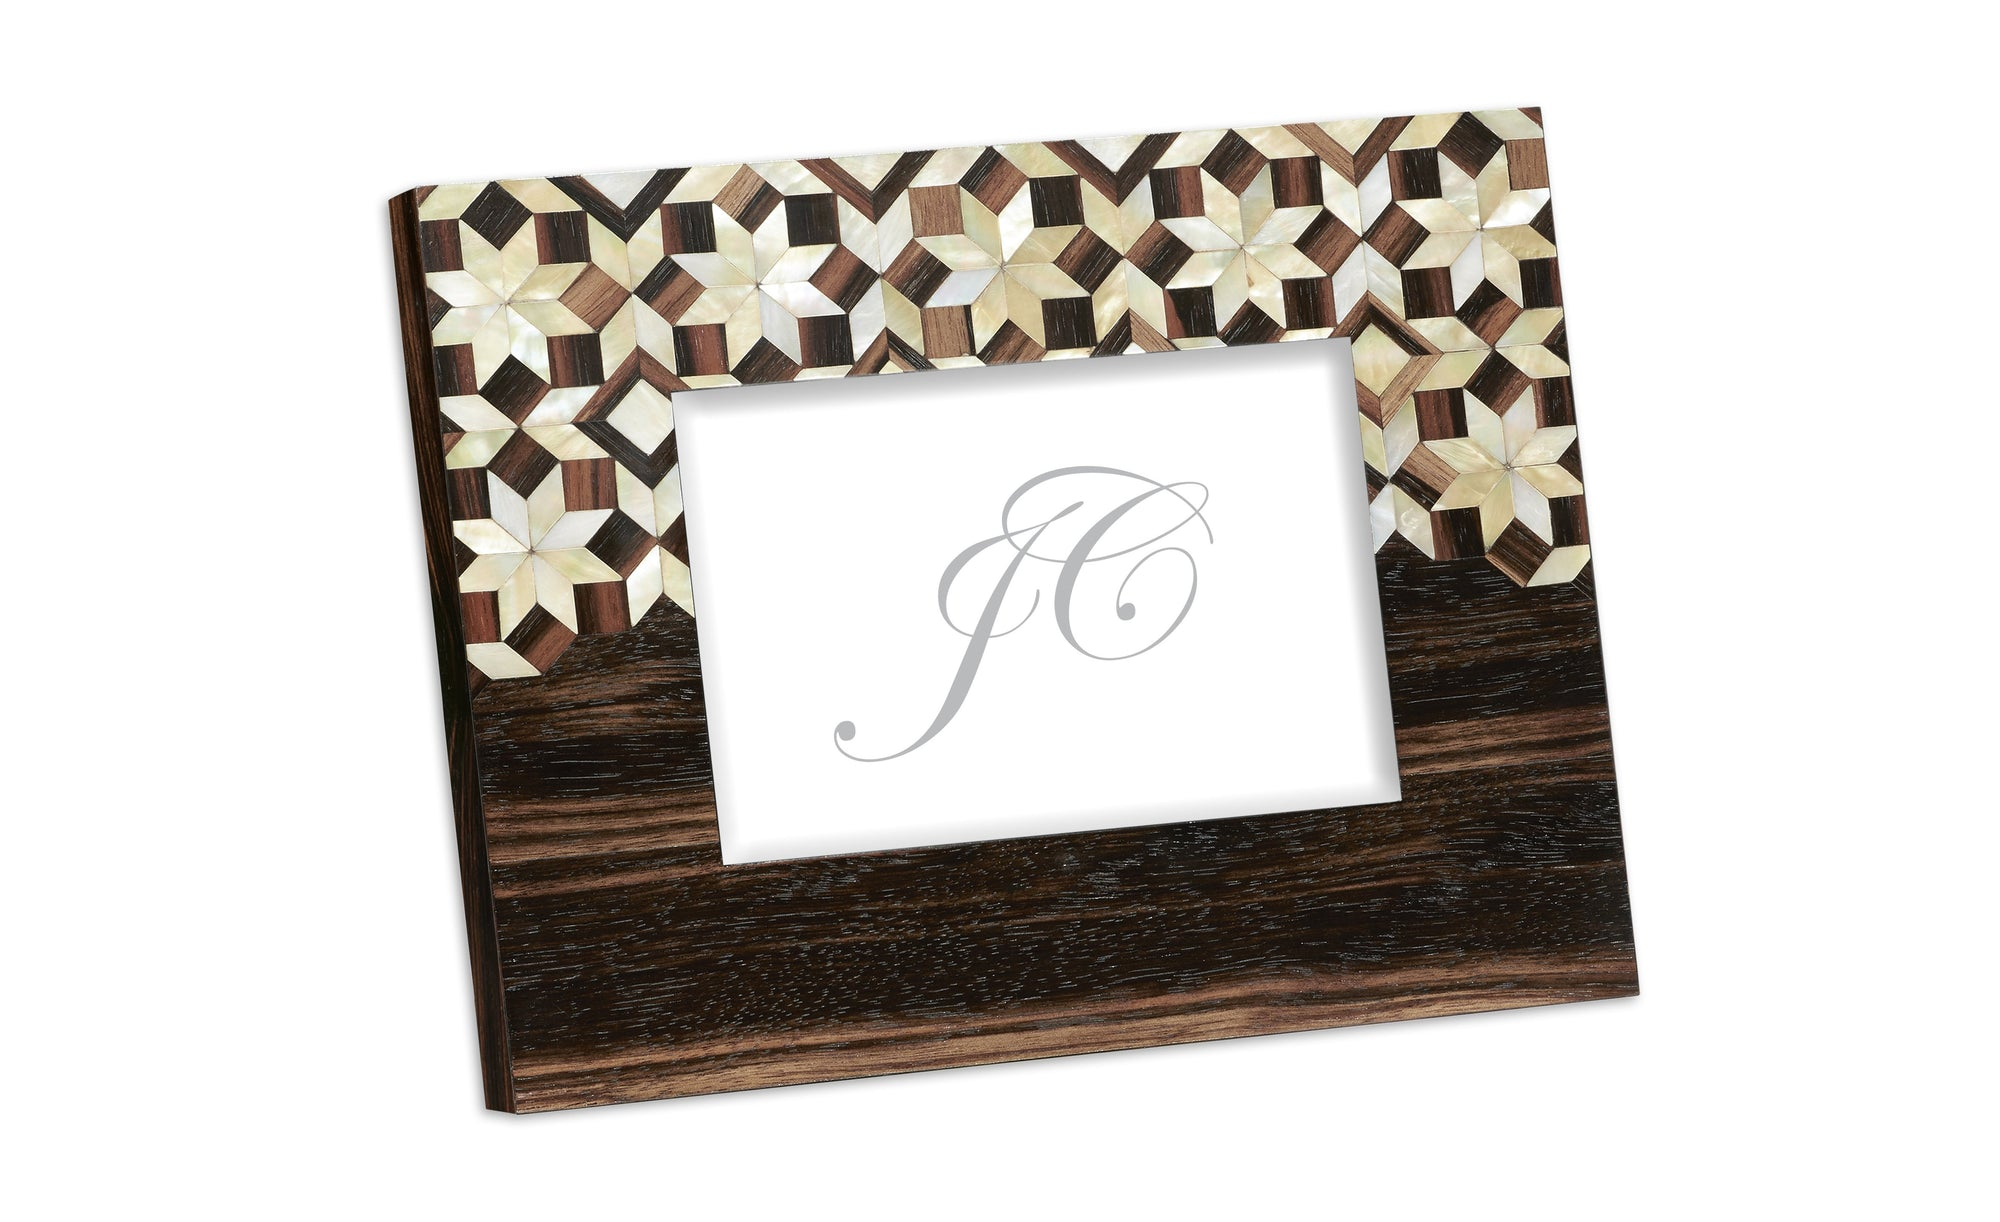 5x7 Horizontal Macassar Ebony & Mother of Pearl Mosaic Picture Frame by Jonathan Charles - HomeKingz.com - Online furniture shop with the best prices & premium customer support!